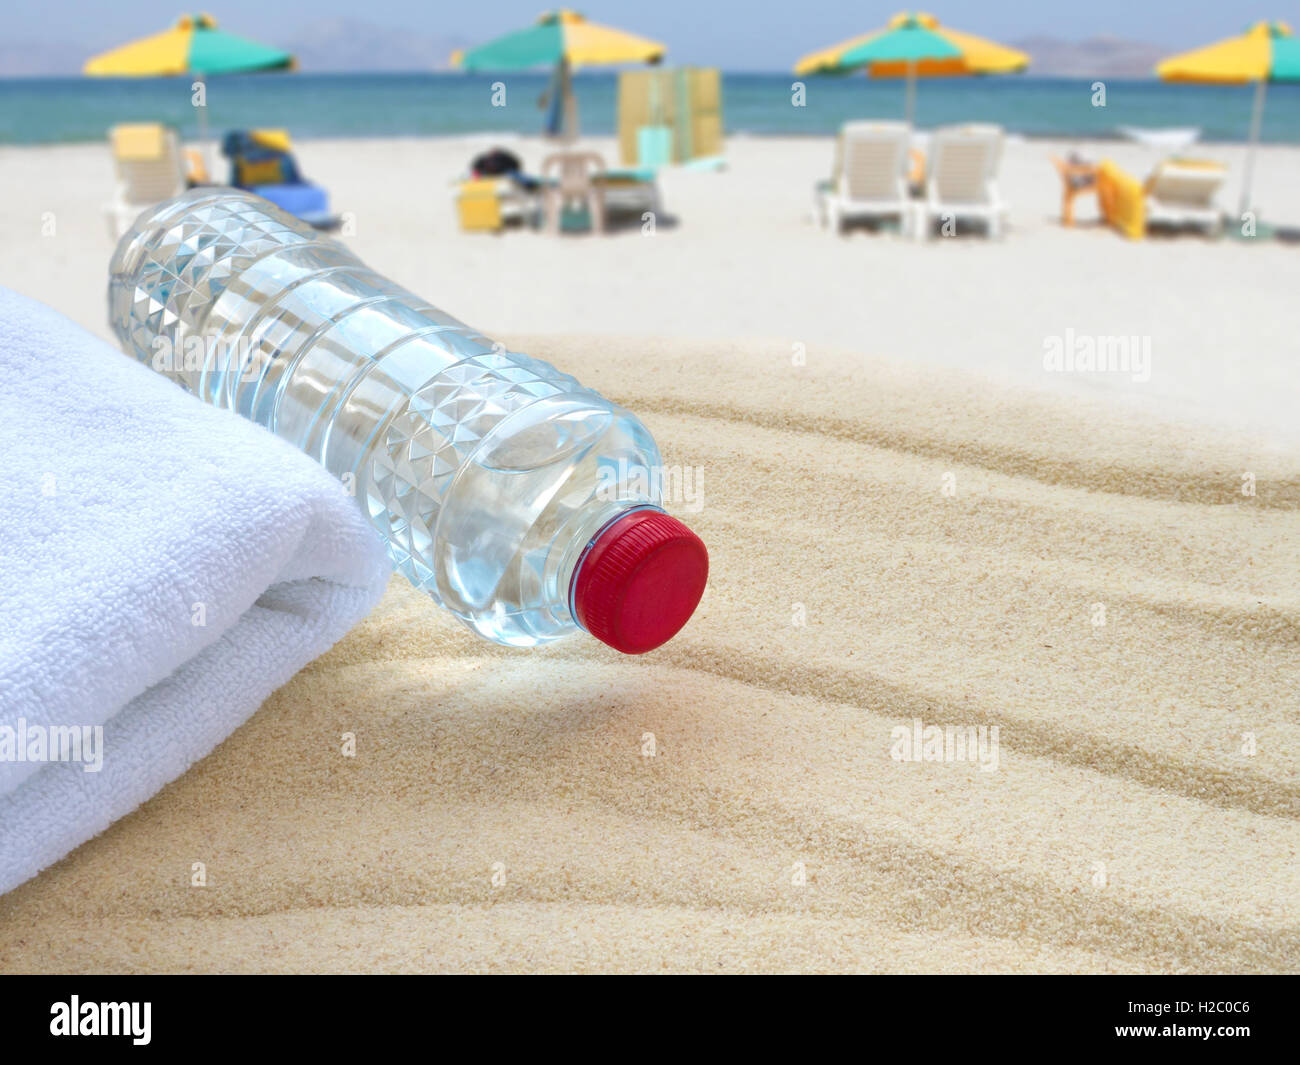 Mineral water bottle and towel on the public beach - Stock Image